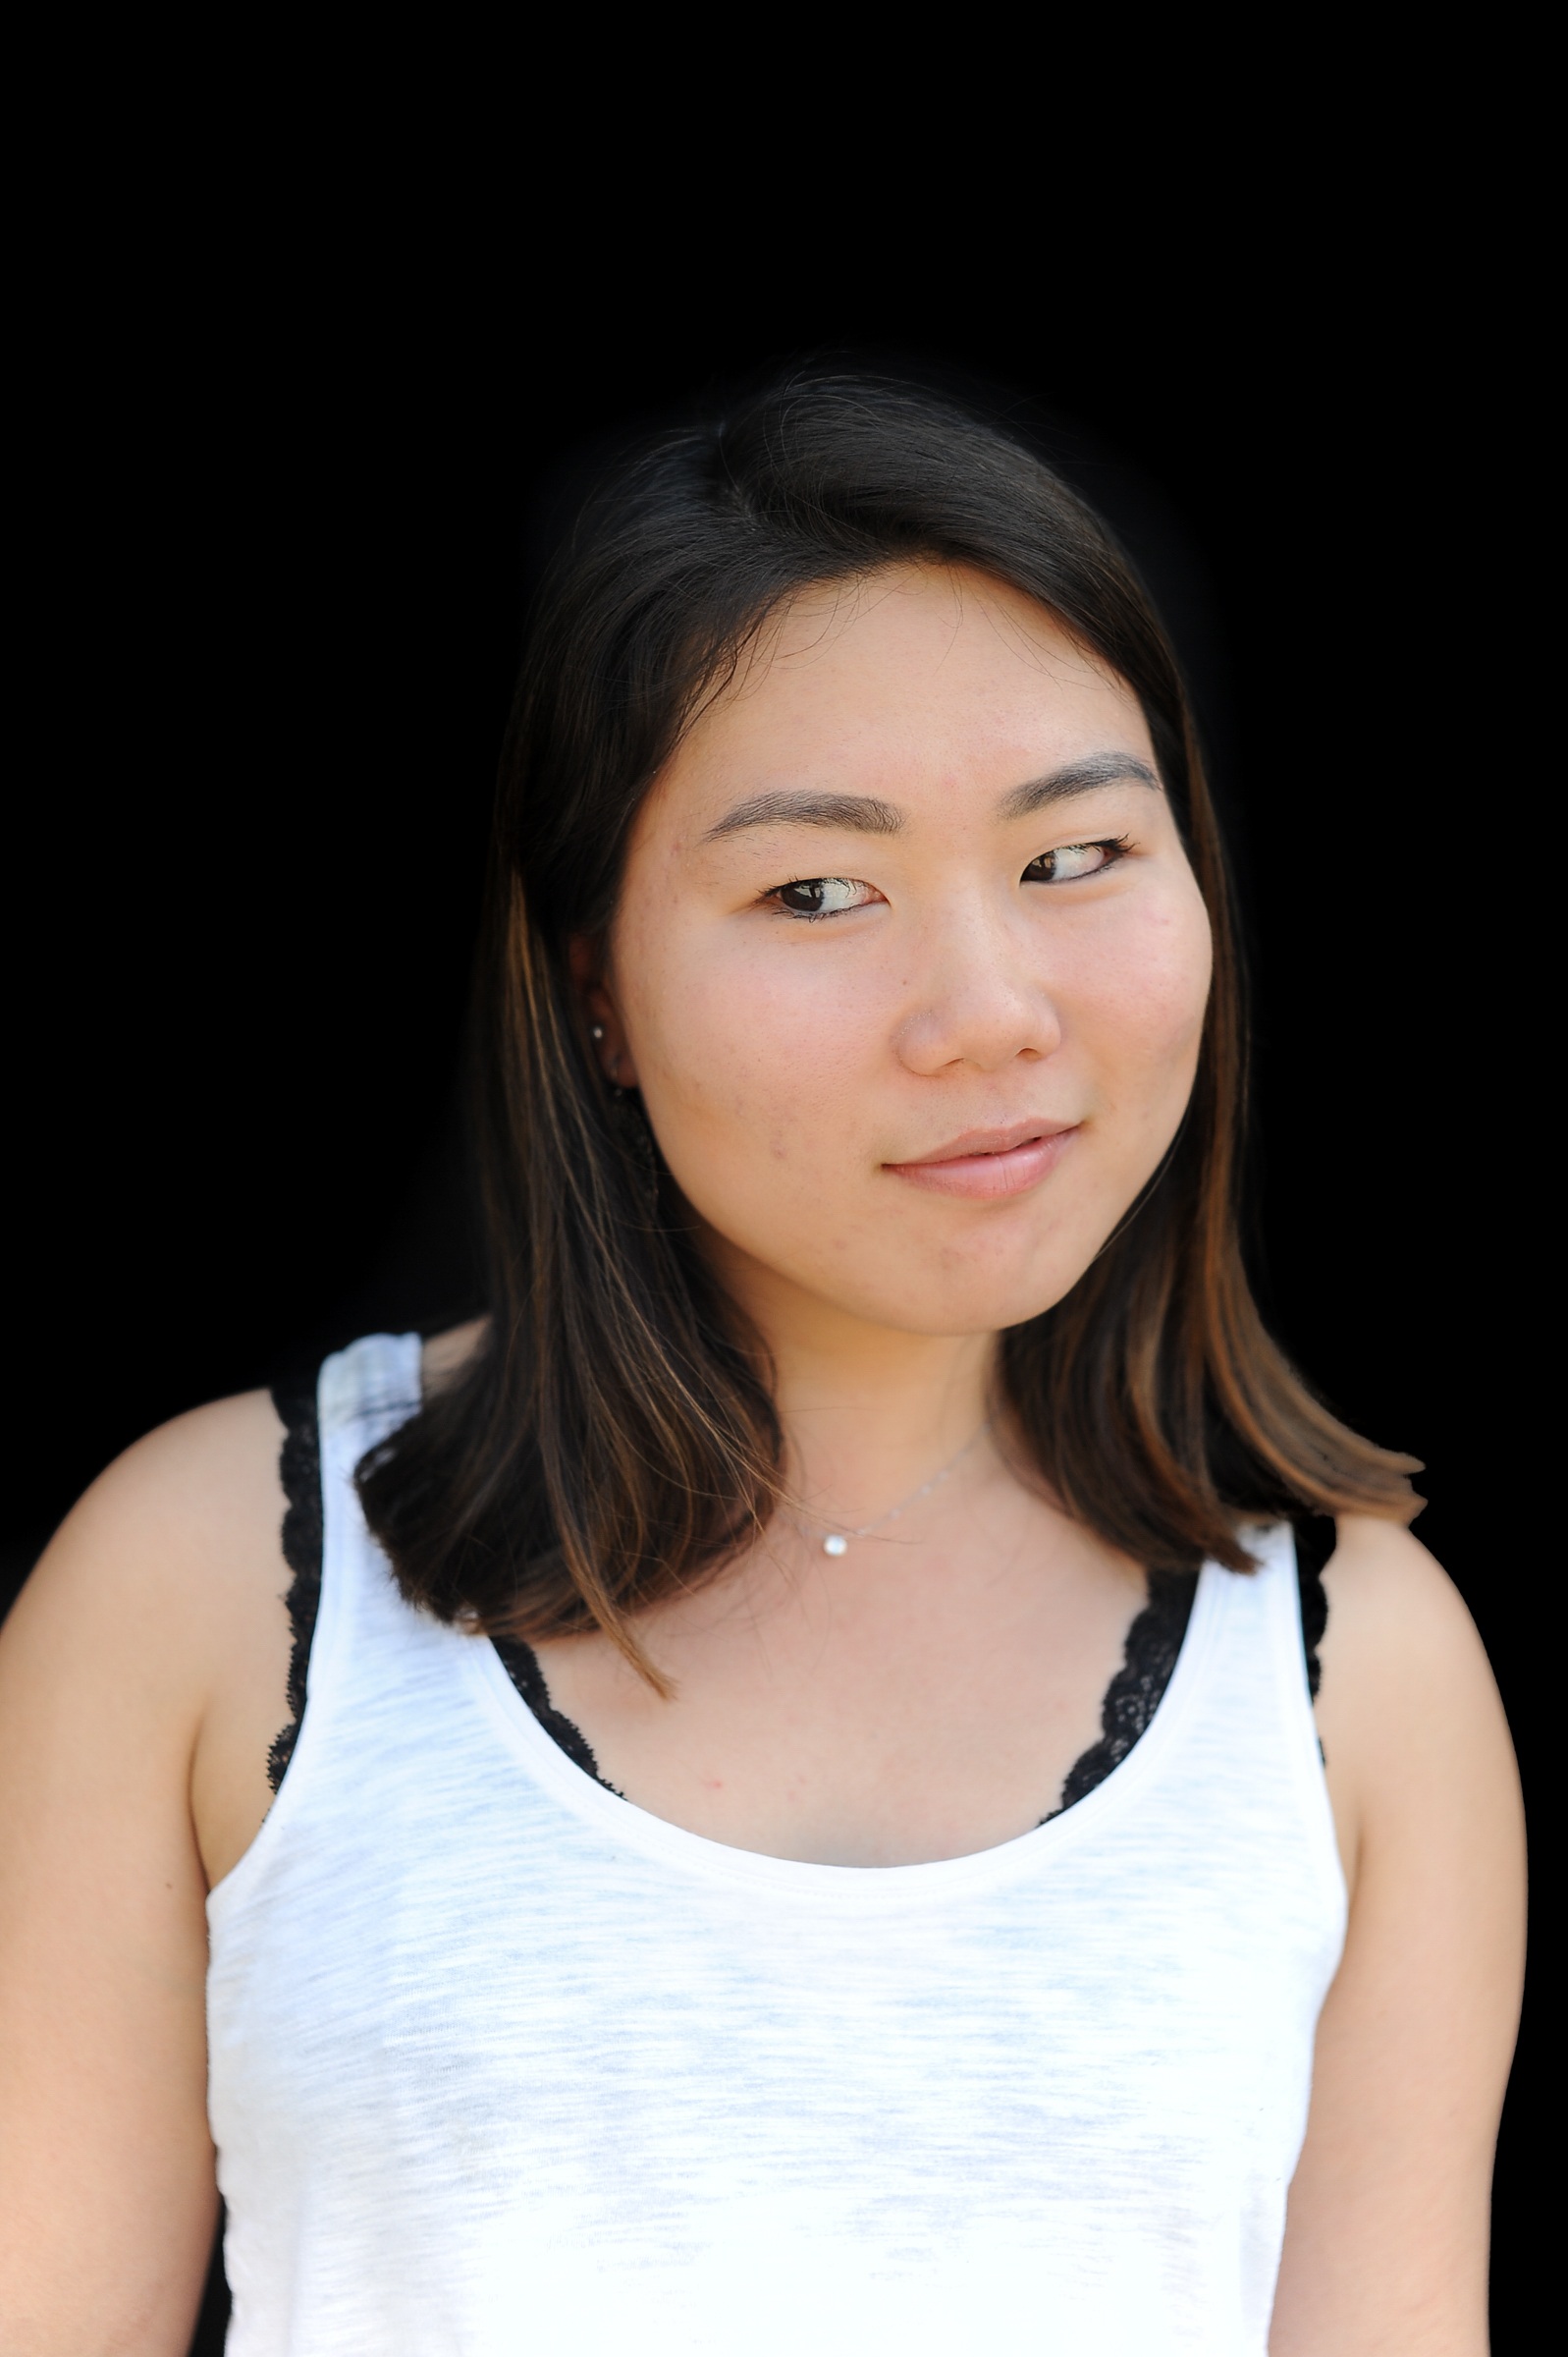 Name: Agnes Kwak